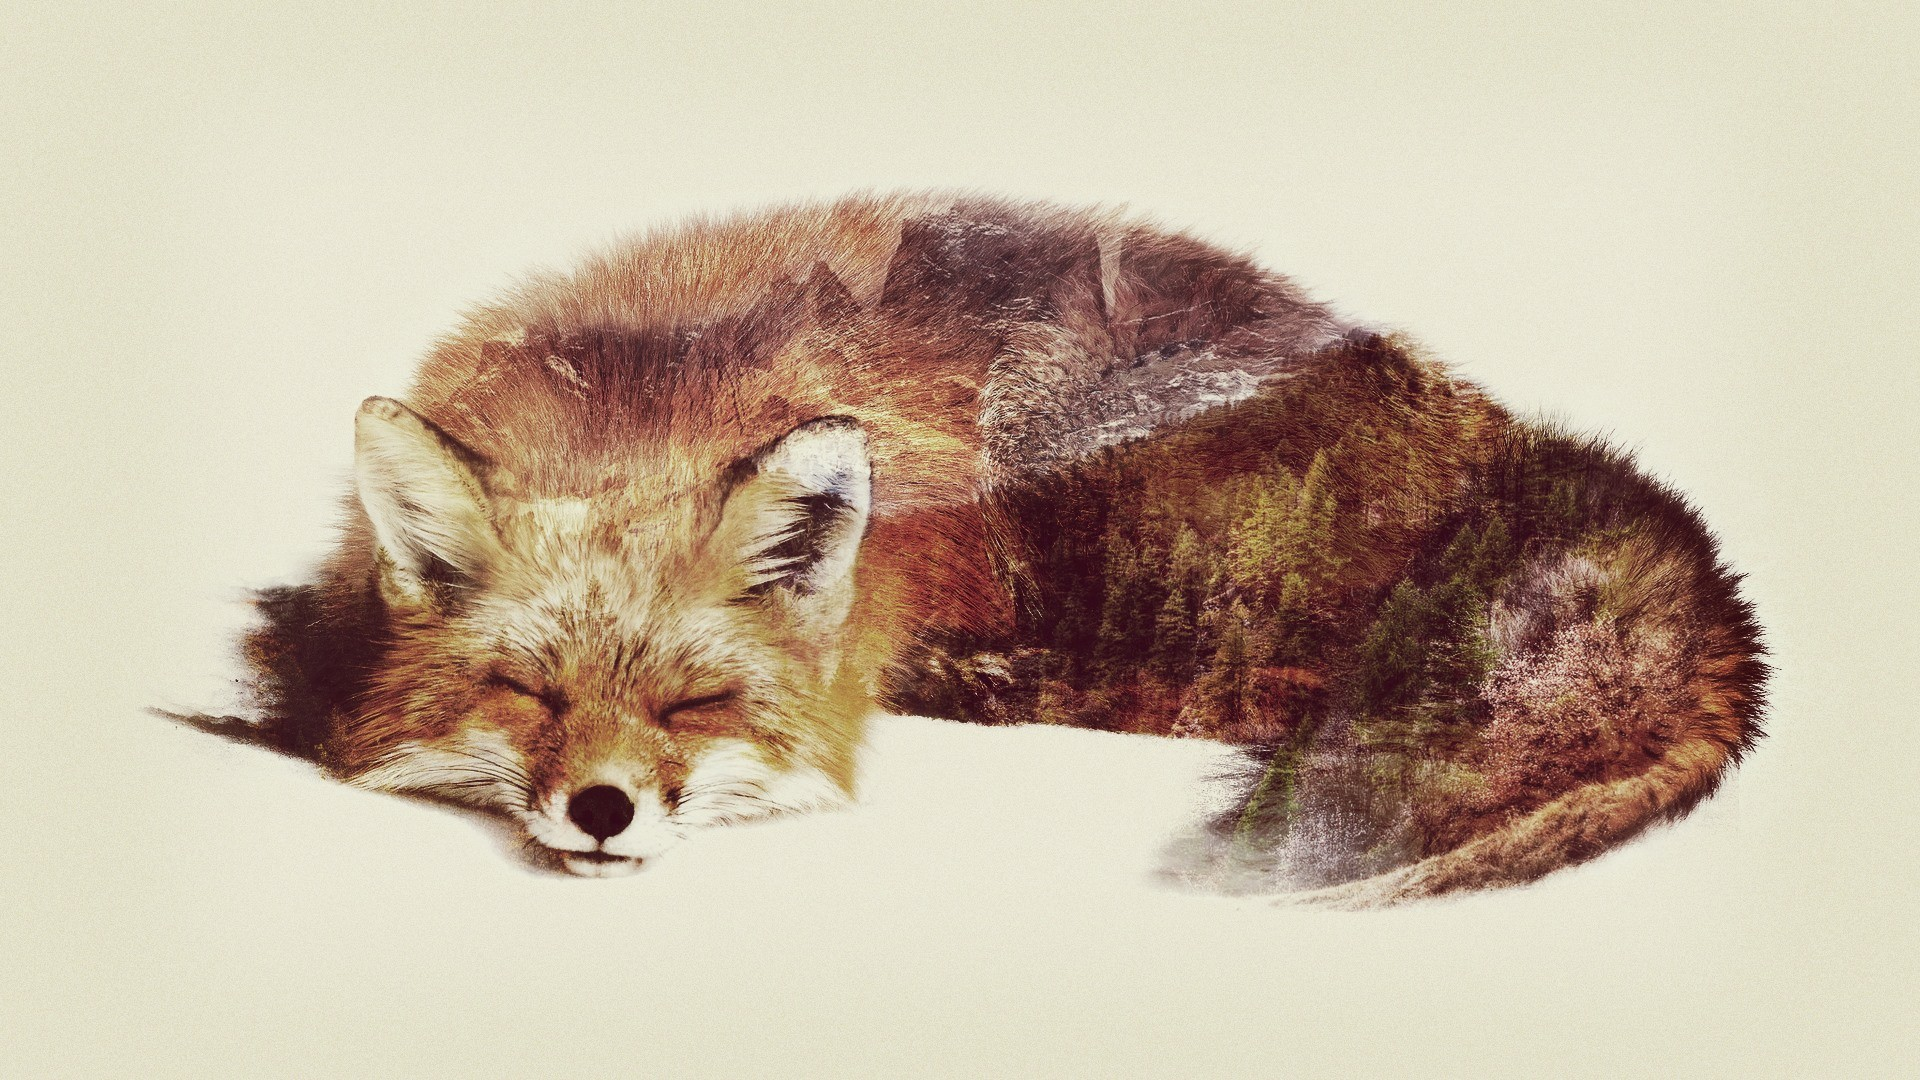 Double-Exposure-Fox-Digital-1920x1080-http-ift-tt-VEcpbK-wallpaper-wpc5804237